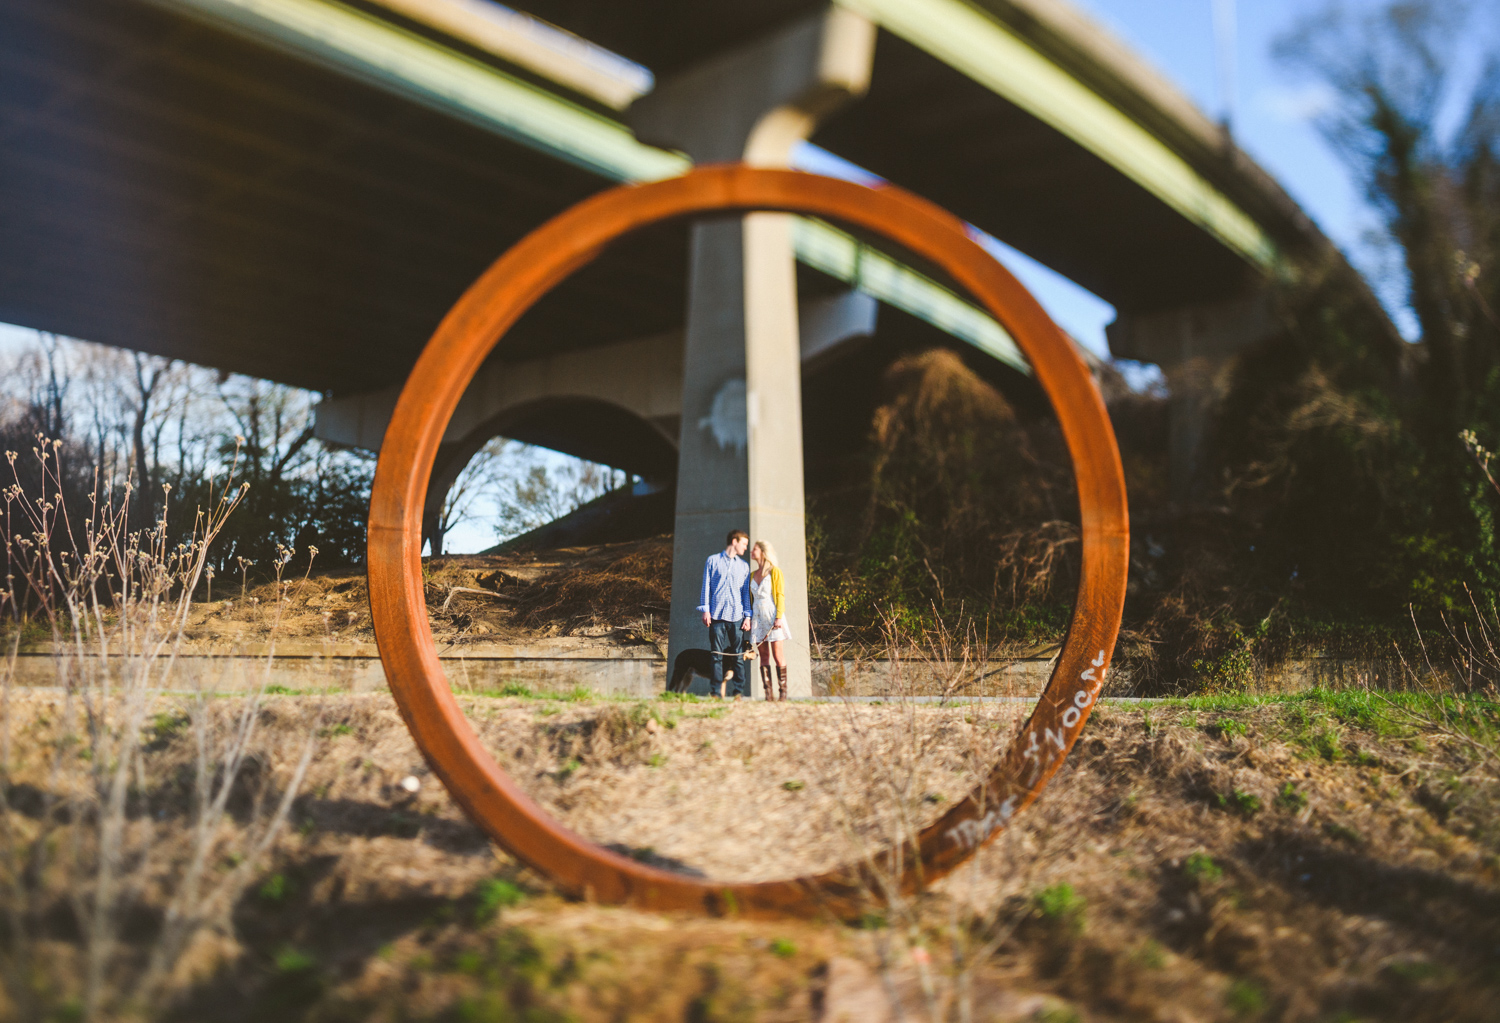 027 - art sculpture in richmond virginia engagement session freelens.jpg